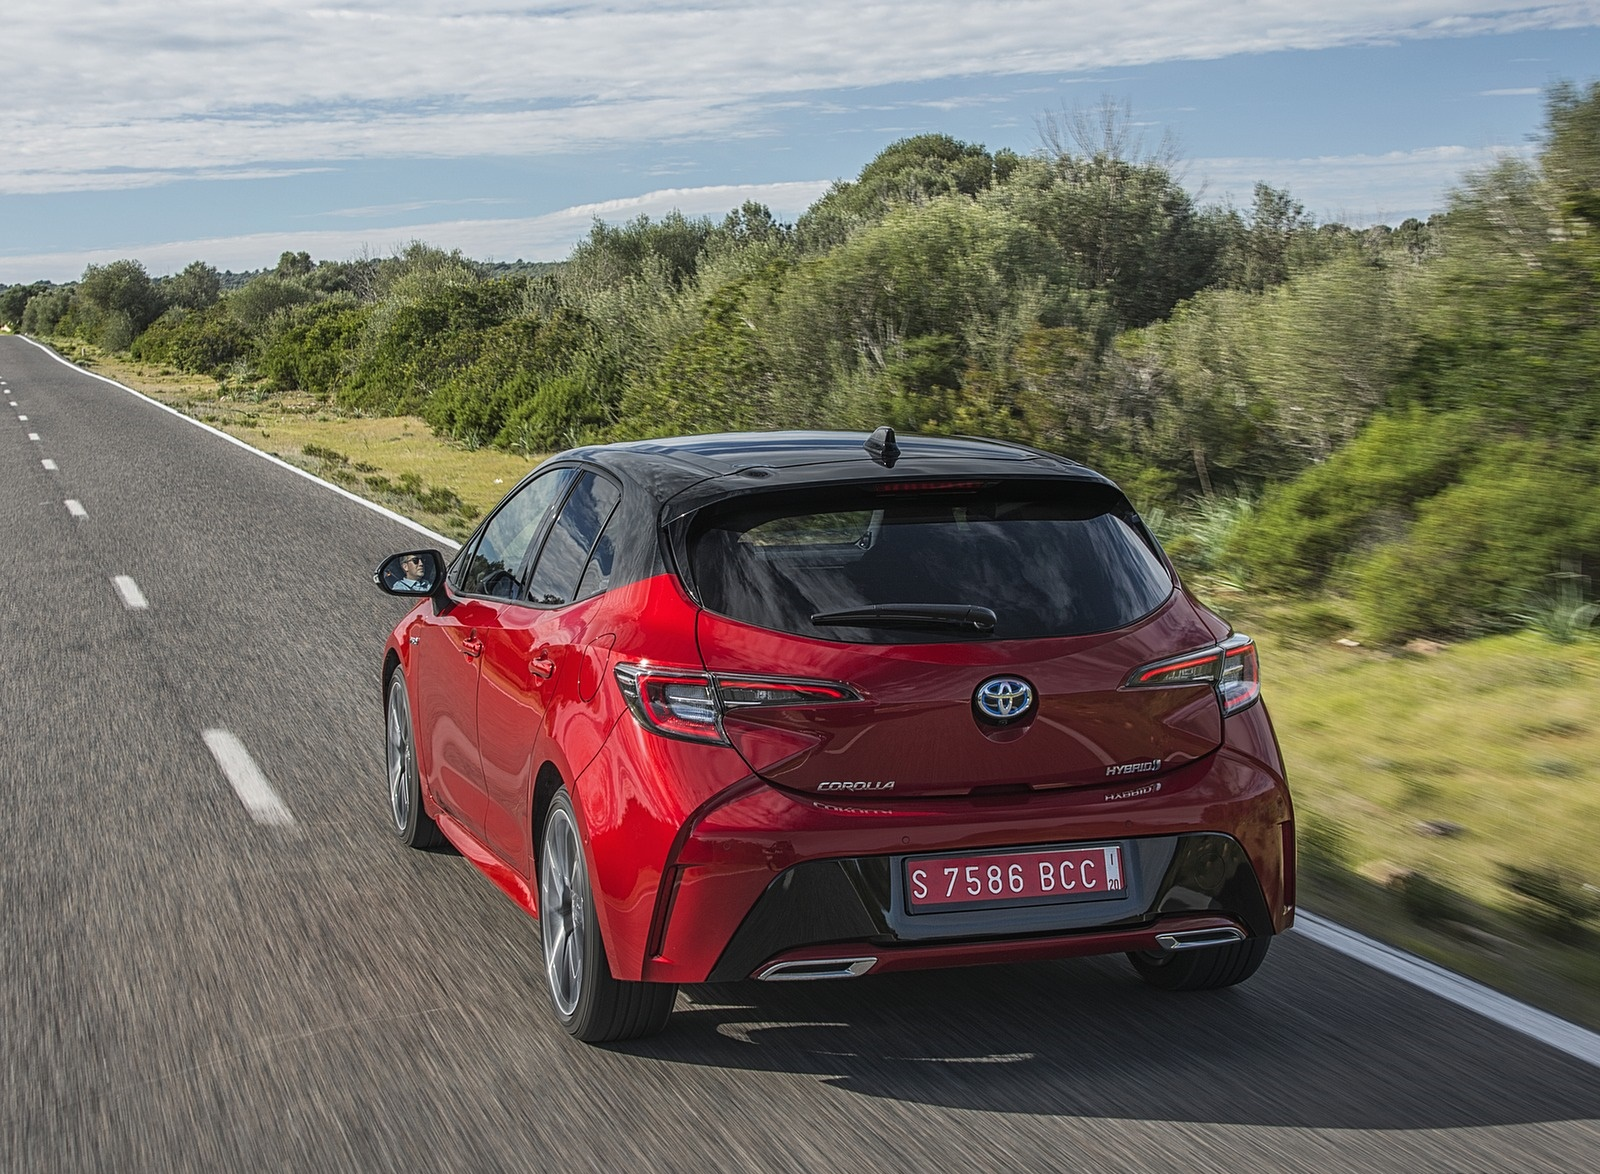 2019 Toyota Corolla Hatchback Hybrid 2.0L Red bitone (EU-Spec) Rear Wallpapers (6)